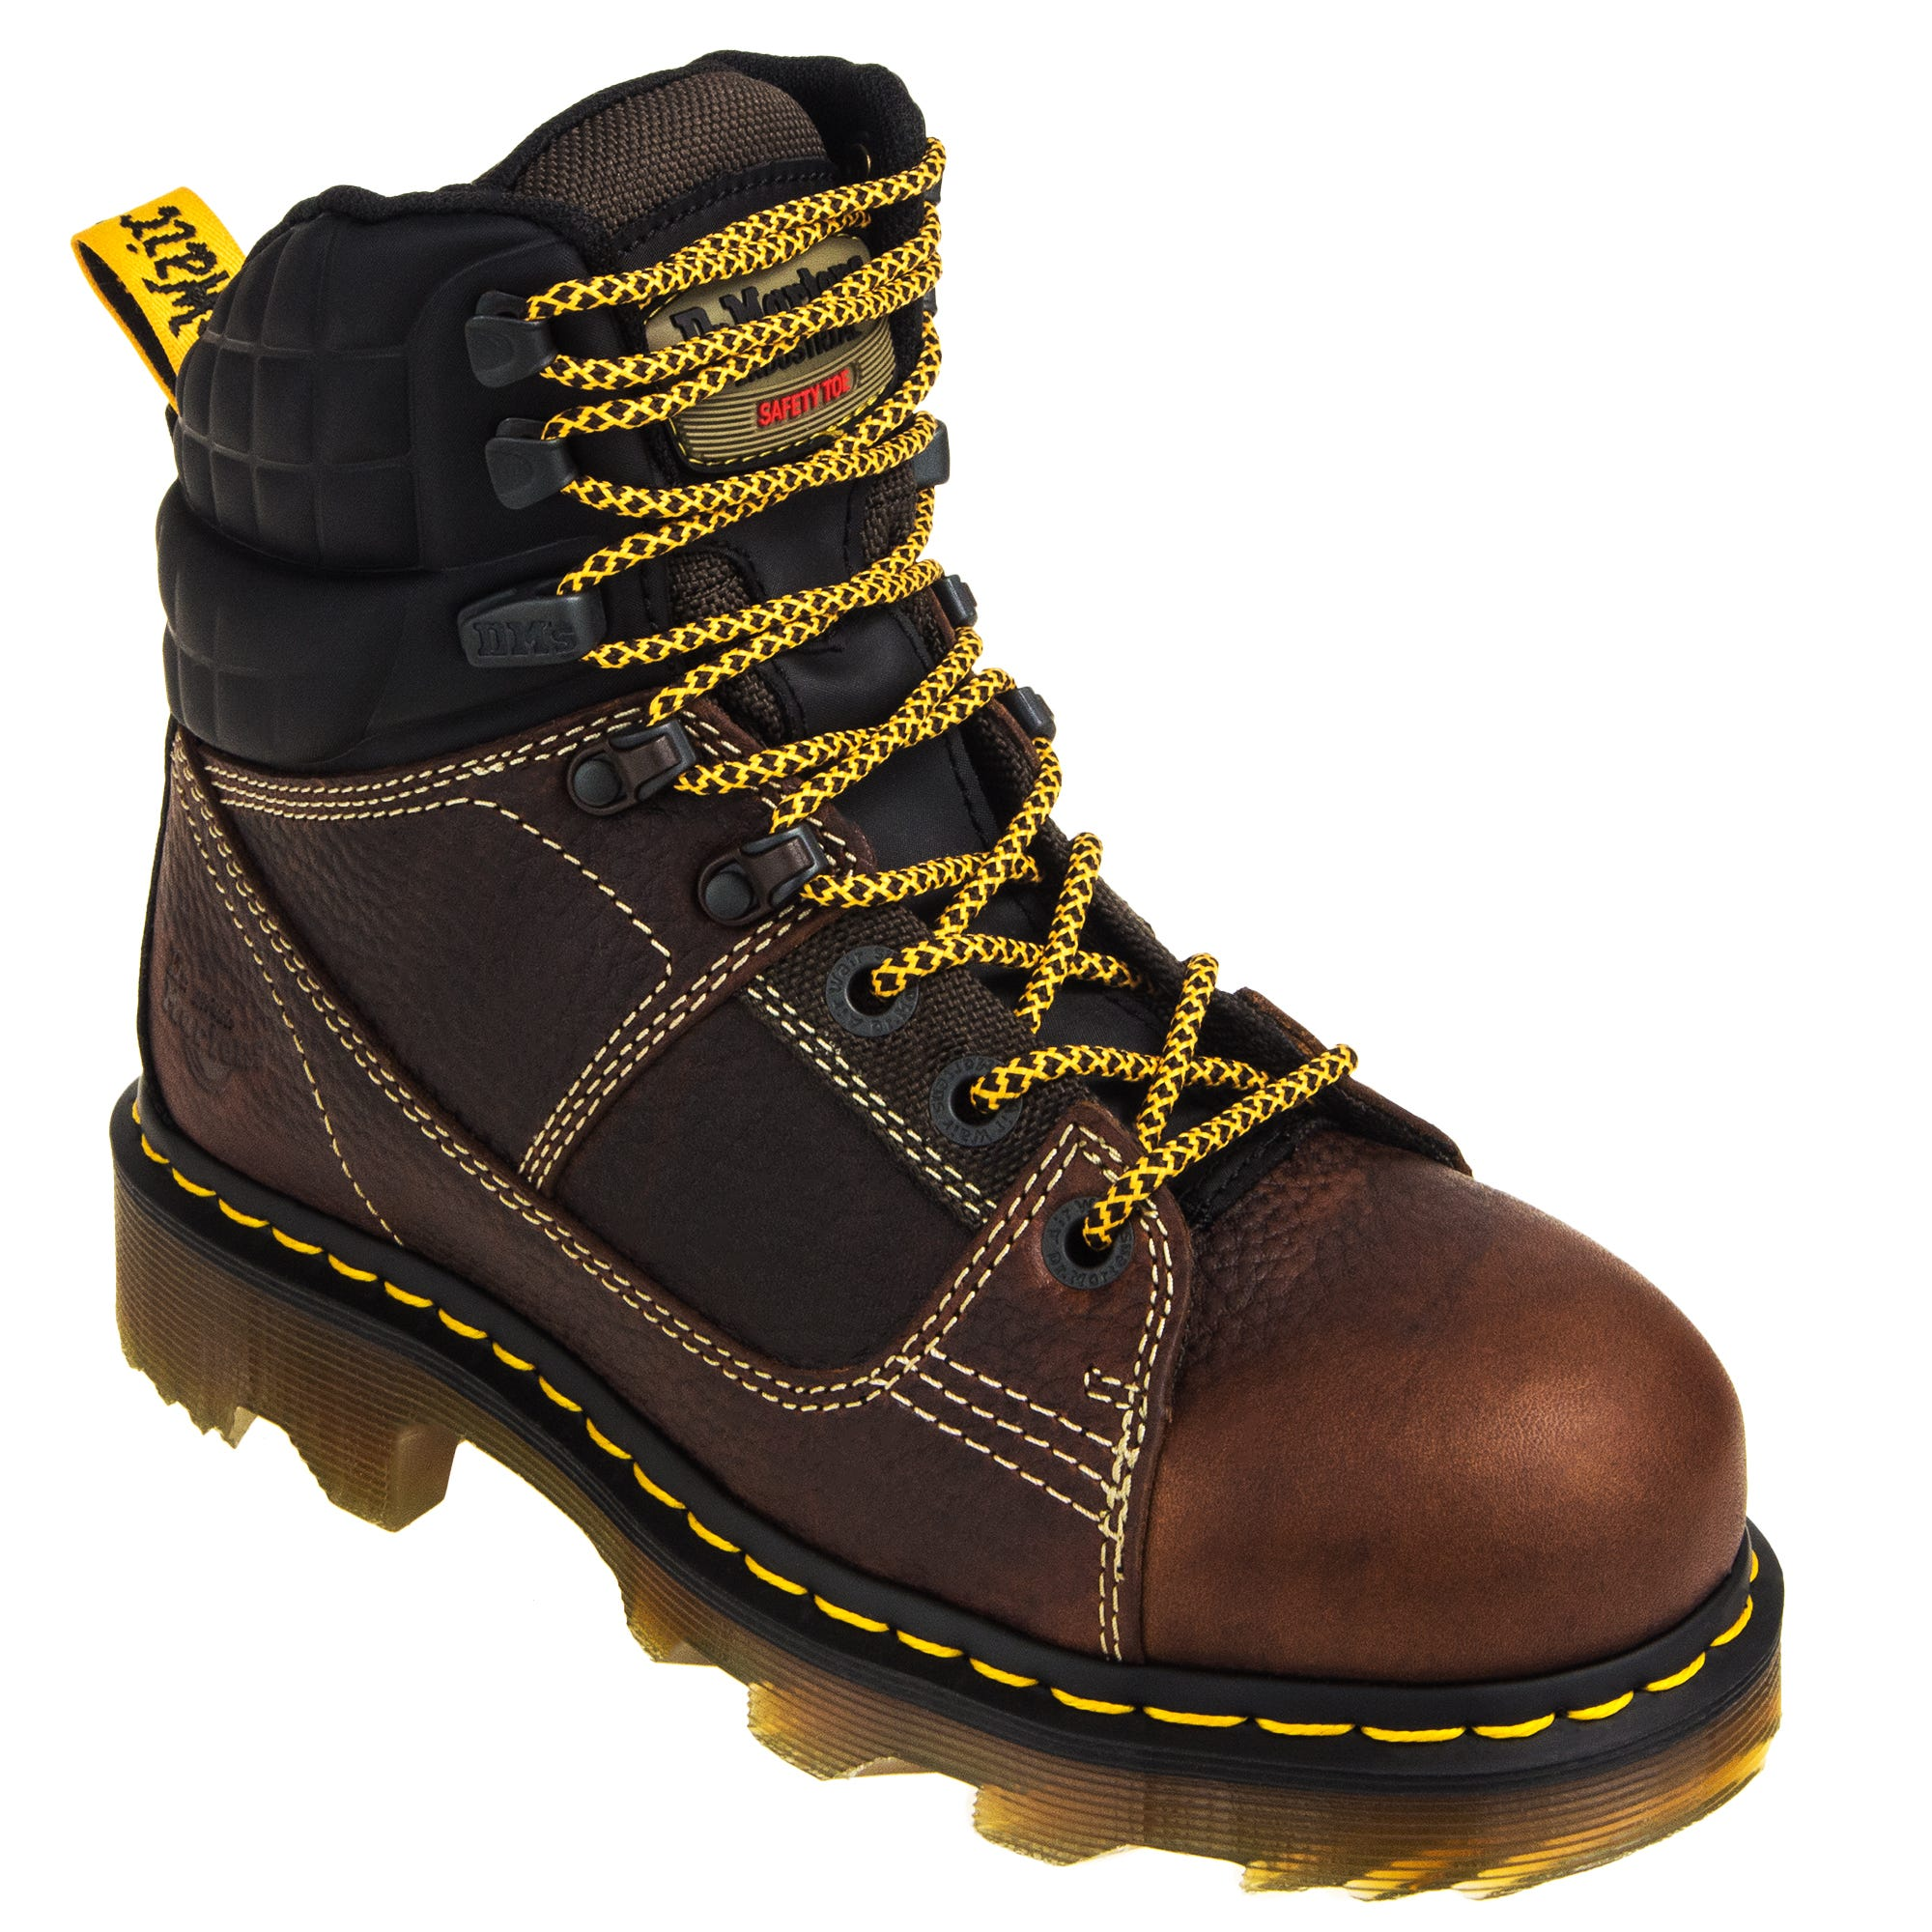 Dr. Martens WIDE R22656214 Brown Camber Alloy Toe Work Boots